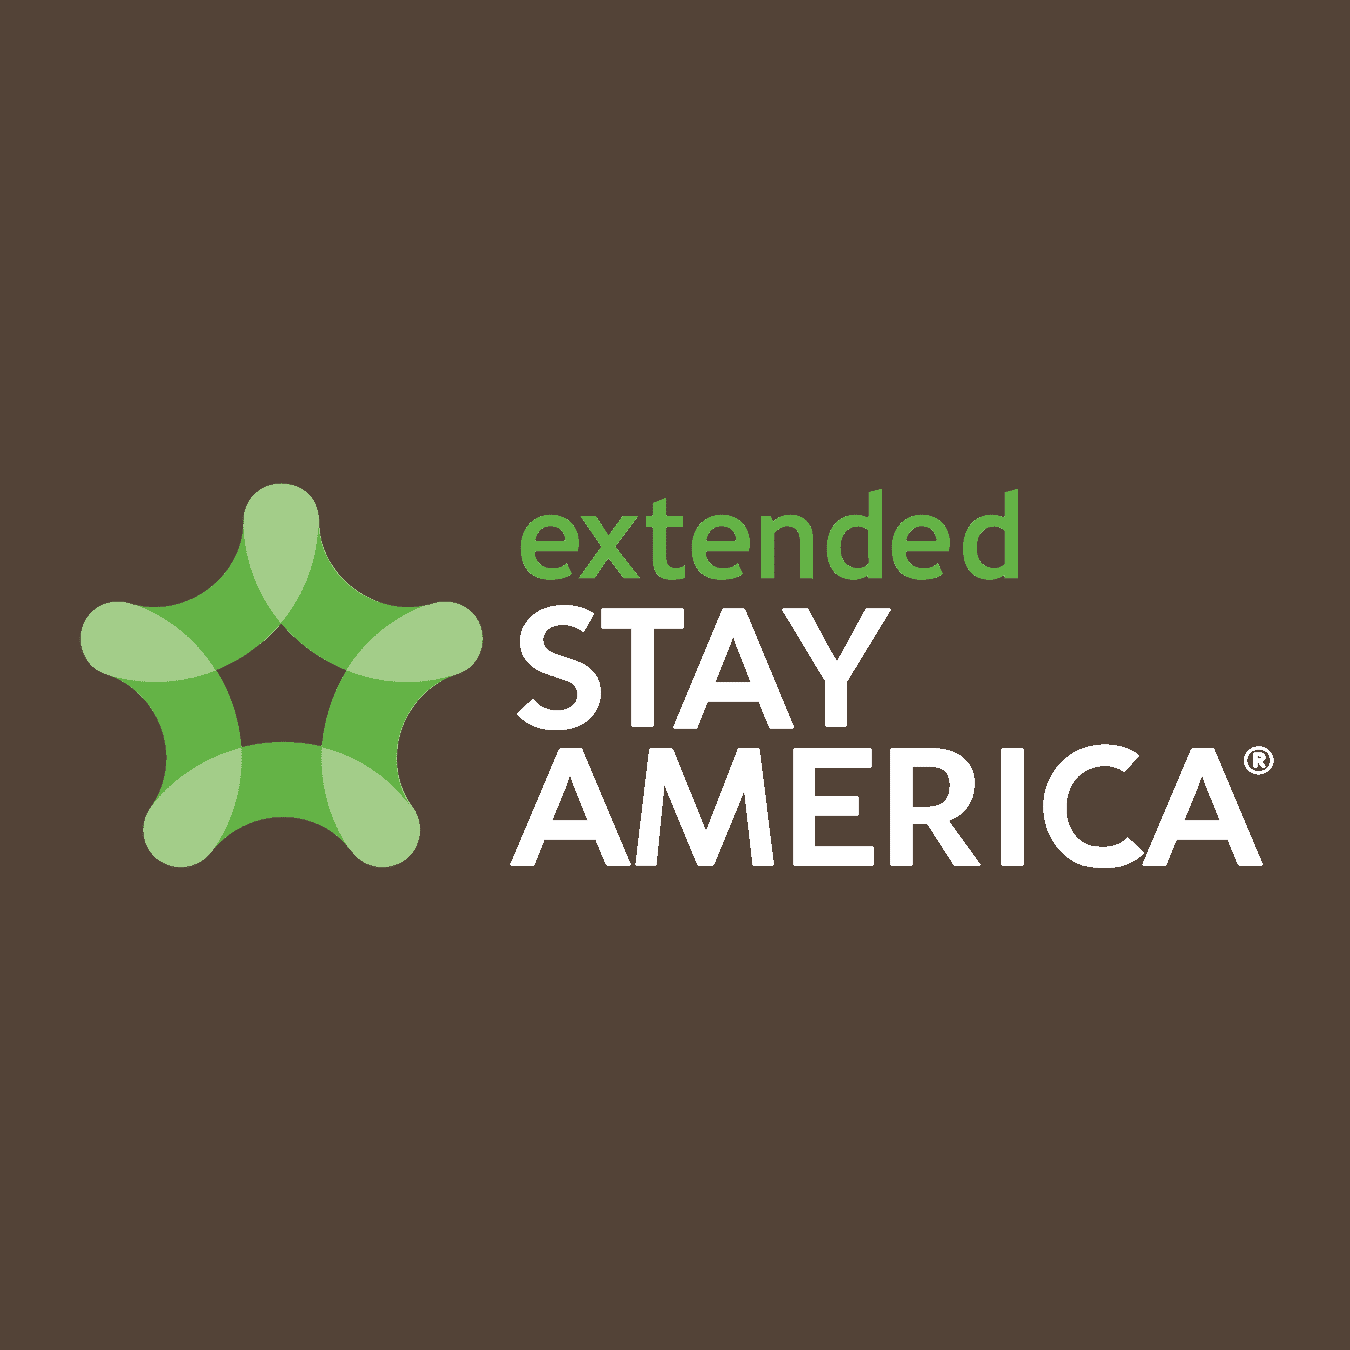 Save up to 31% off stays of 30+ nights at Extended Stay America!